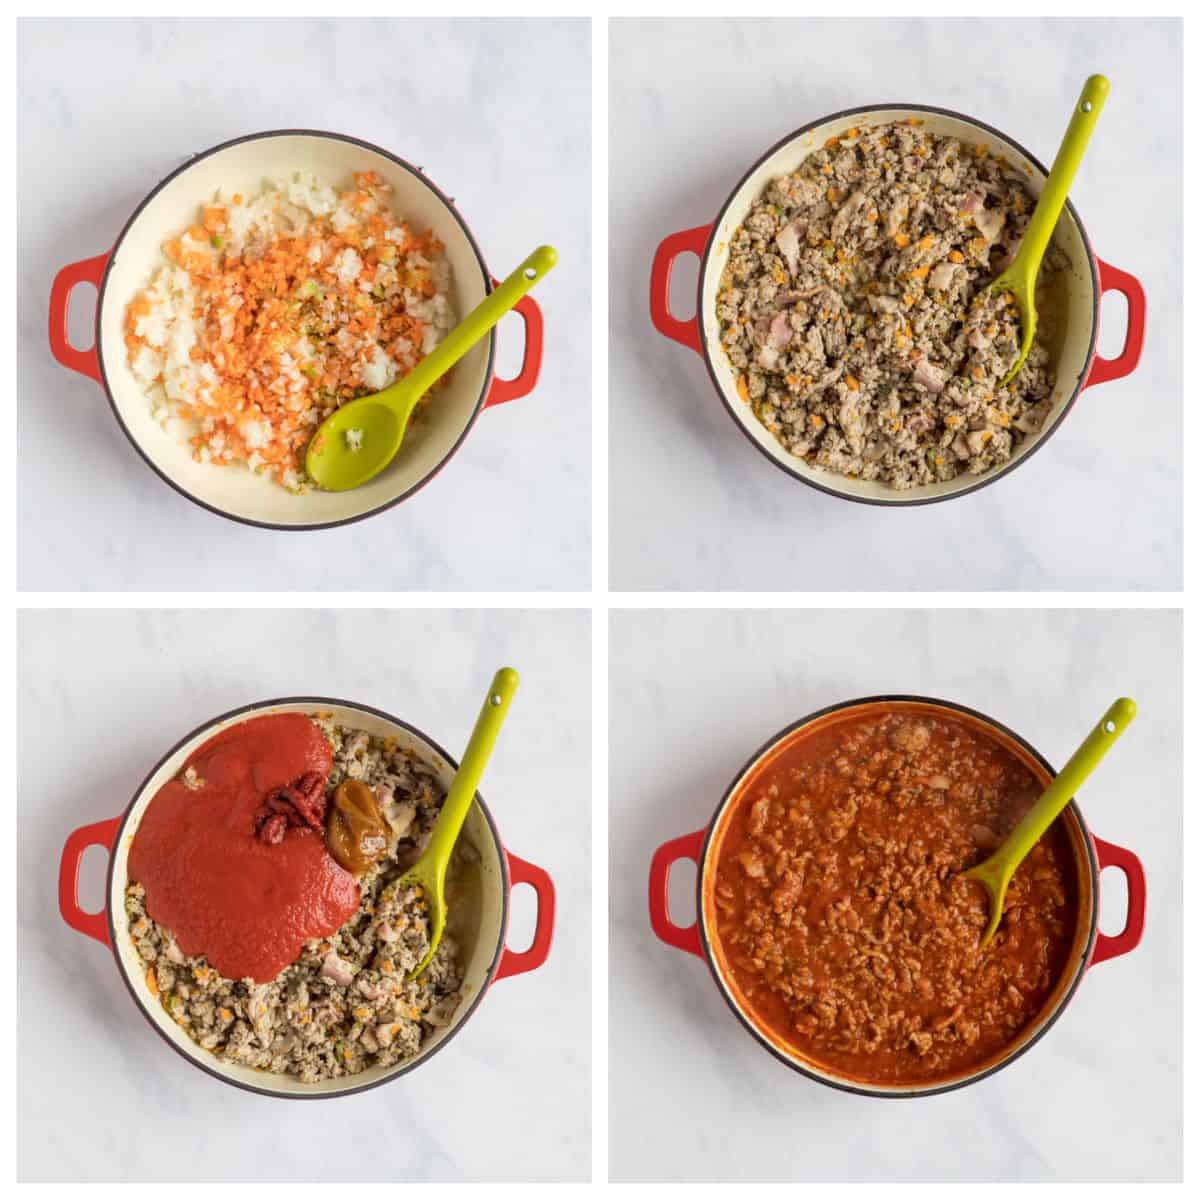 Step by step photo instructions for making the turkey bolognese recipe.